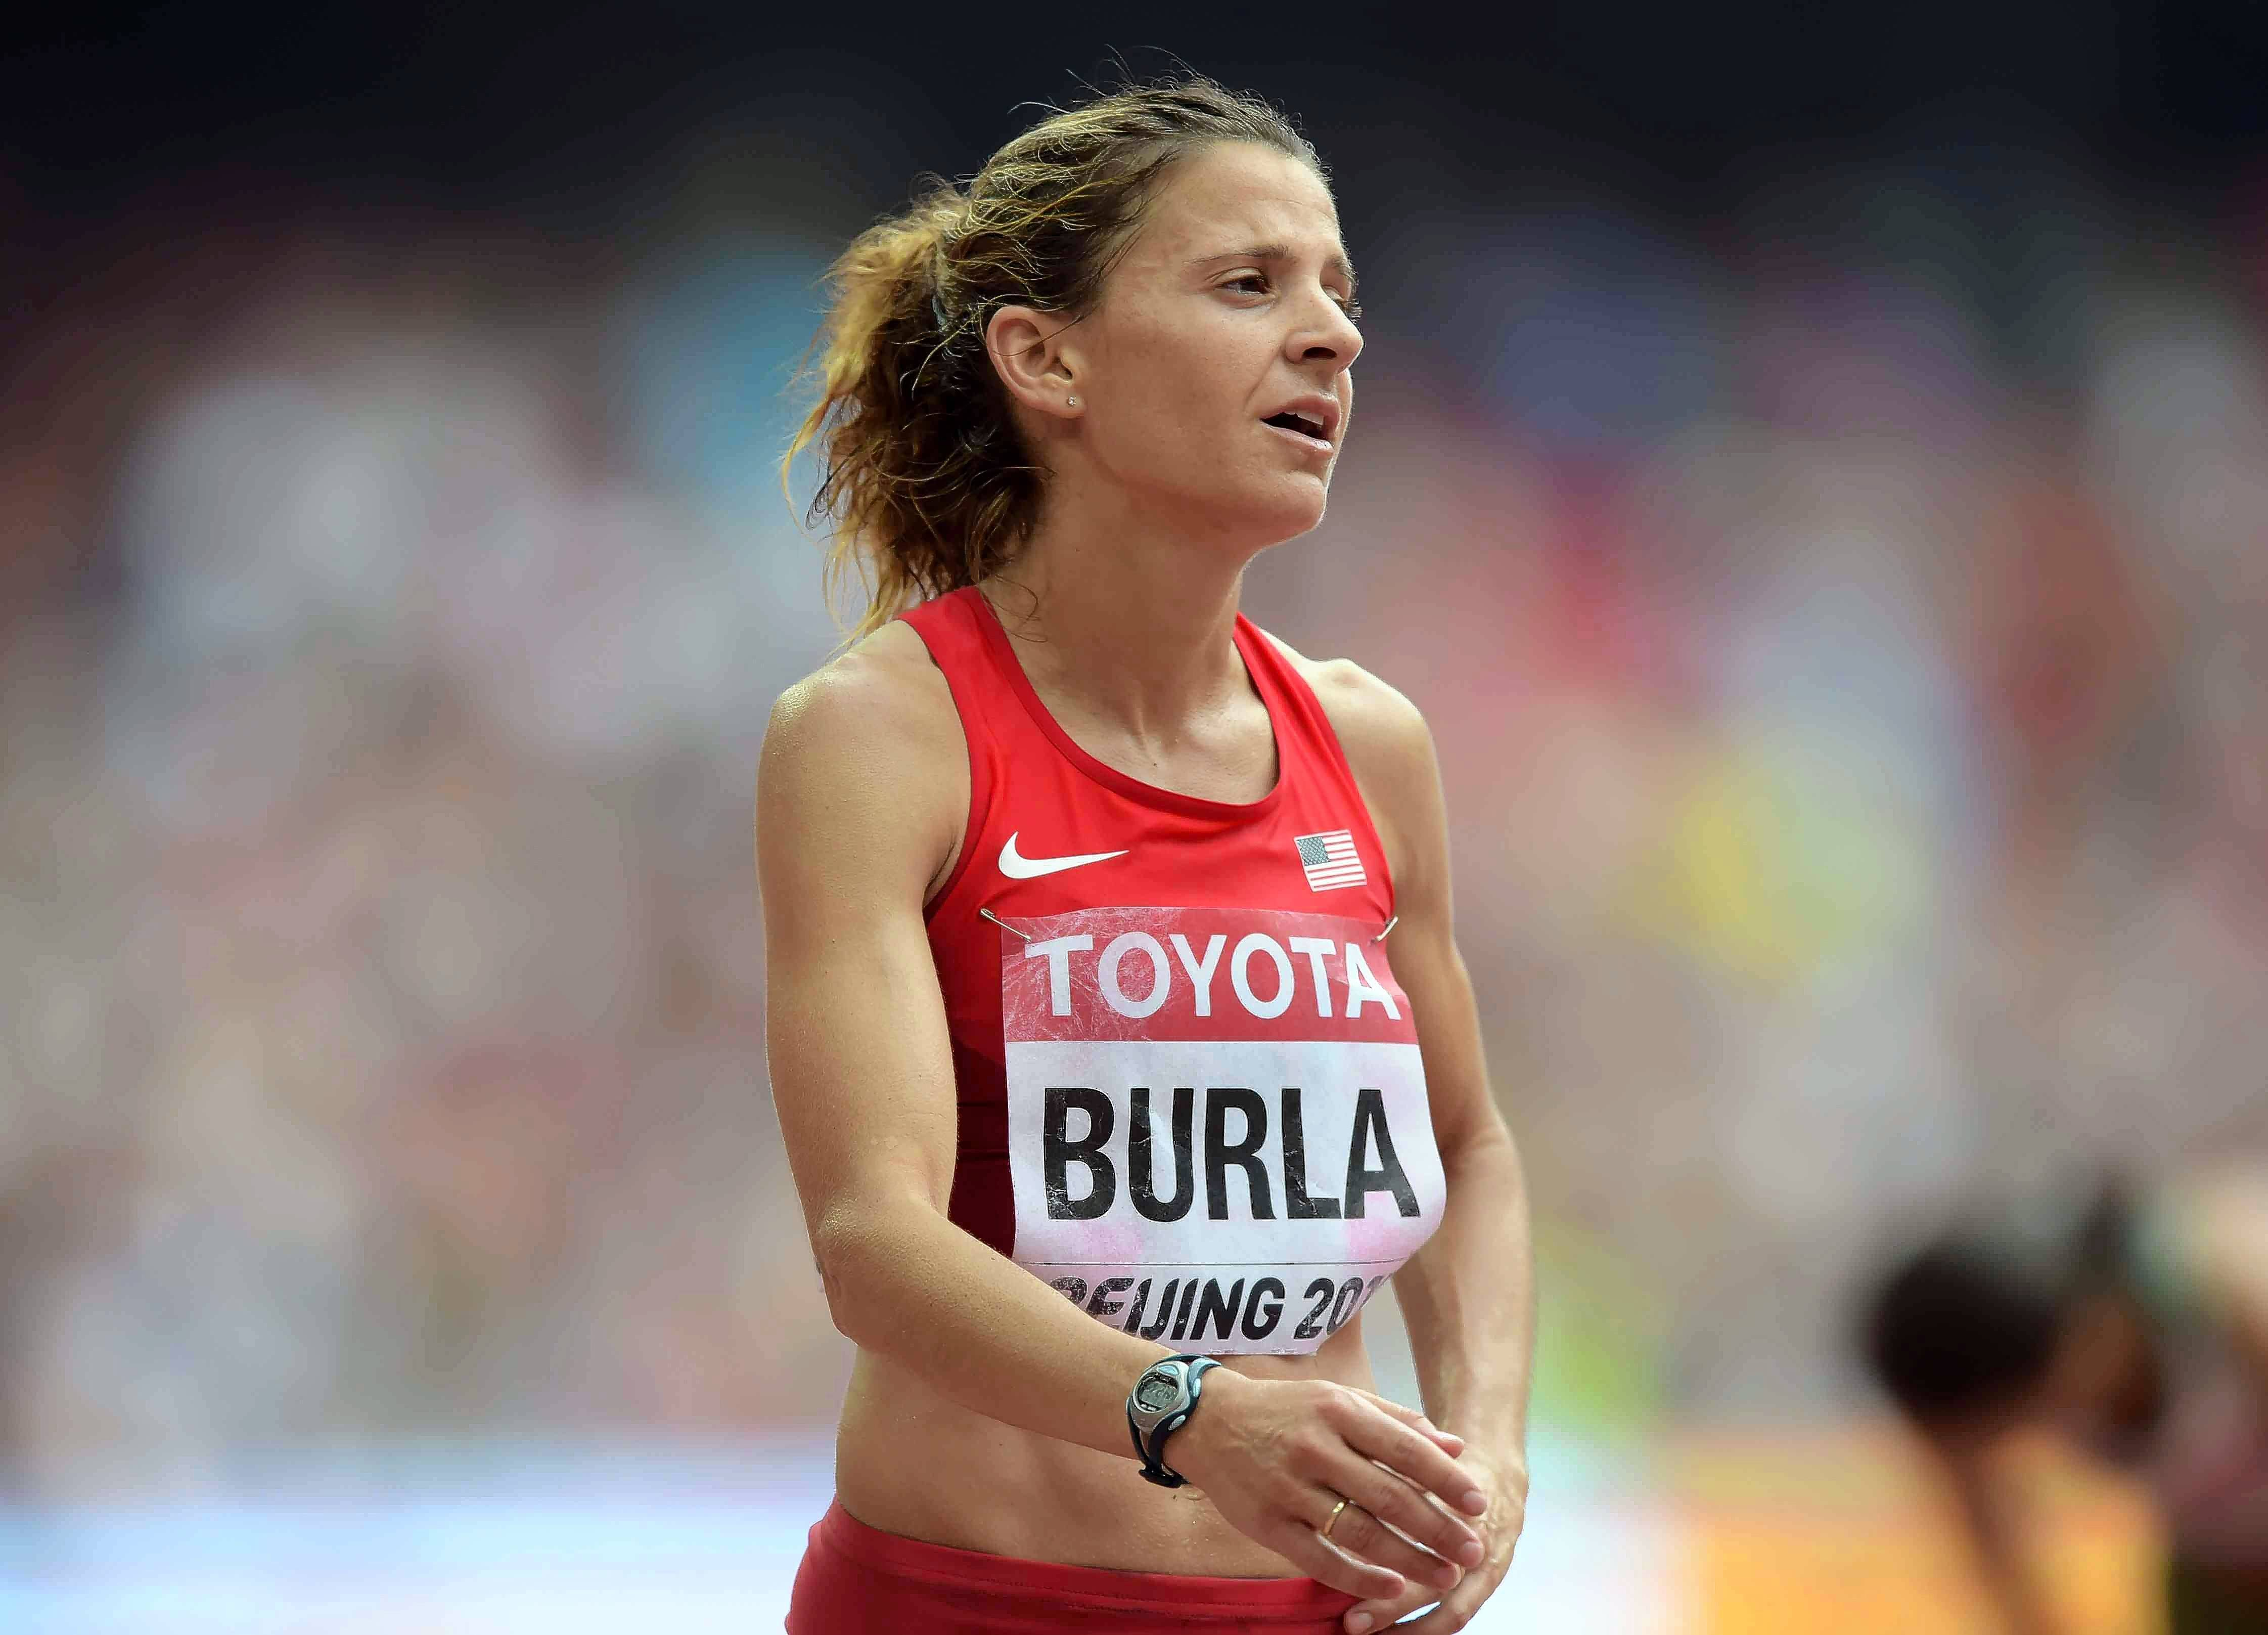 More than five years later after undergoing cancer treatment, Serena Burla is still running and competing at a high level. The 33-year-old Stafford, Va., resident will line up Saturday in Los Angeles for the U.S. Olympic Marathon Trials.